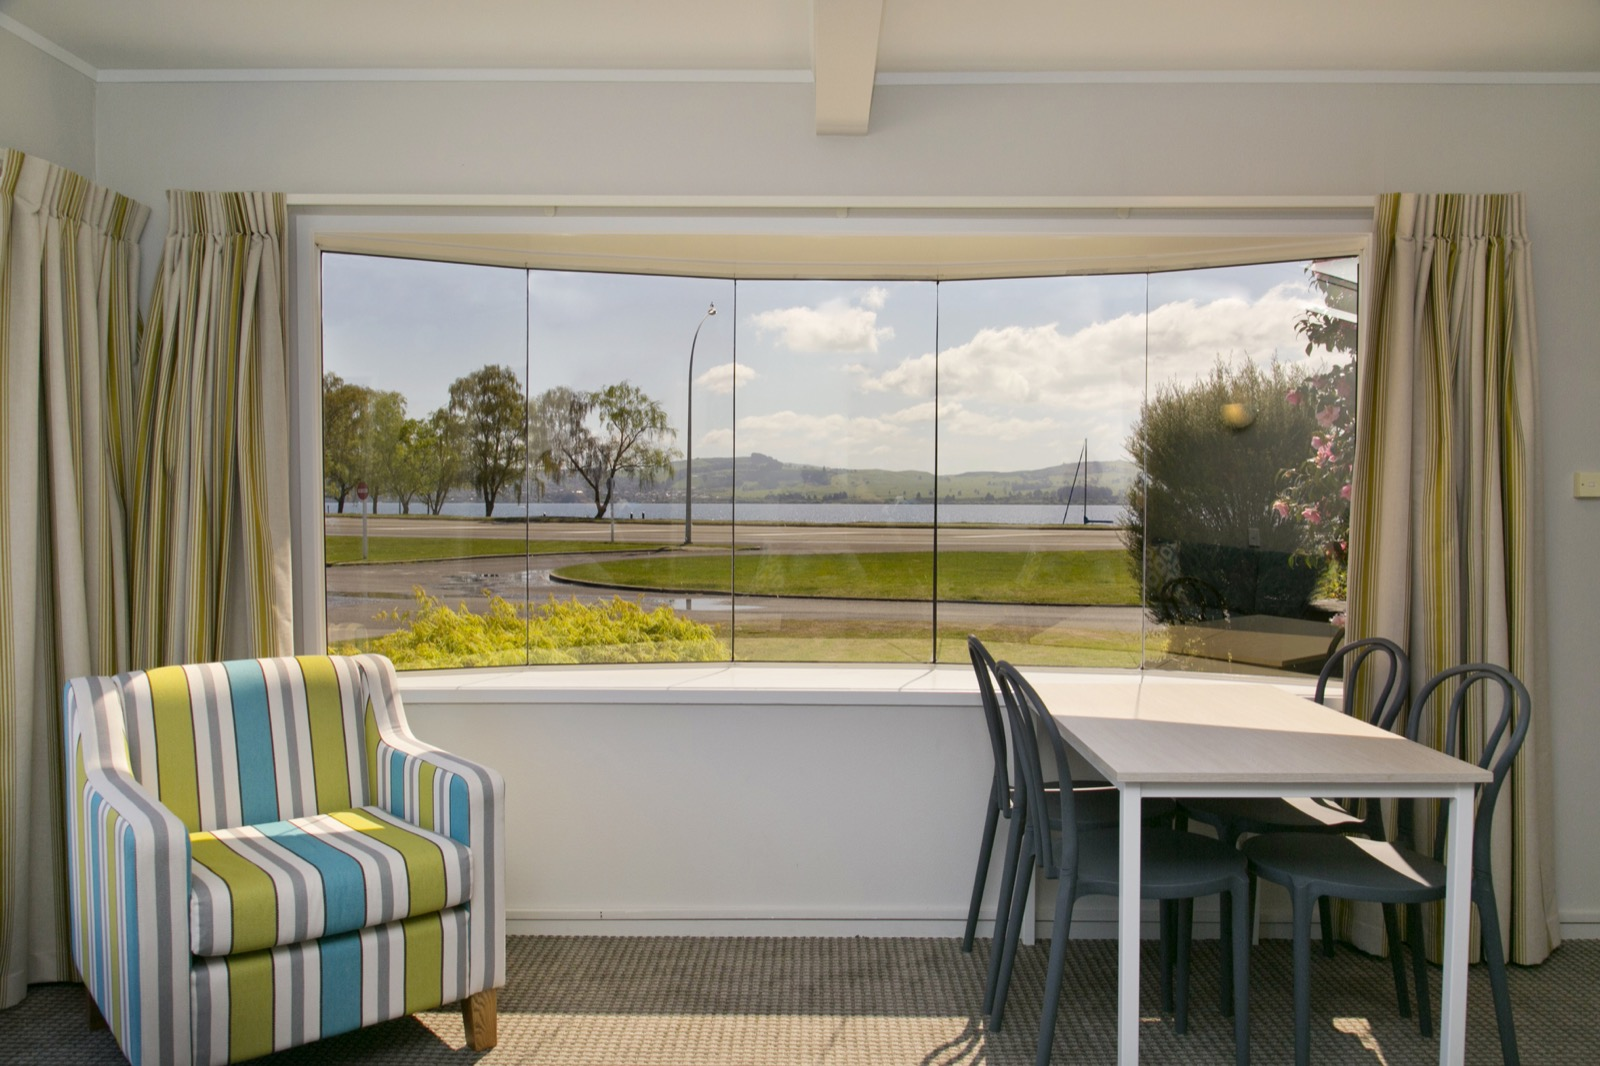 two bedroom poolside with lake view view.jpg